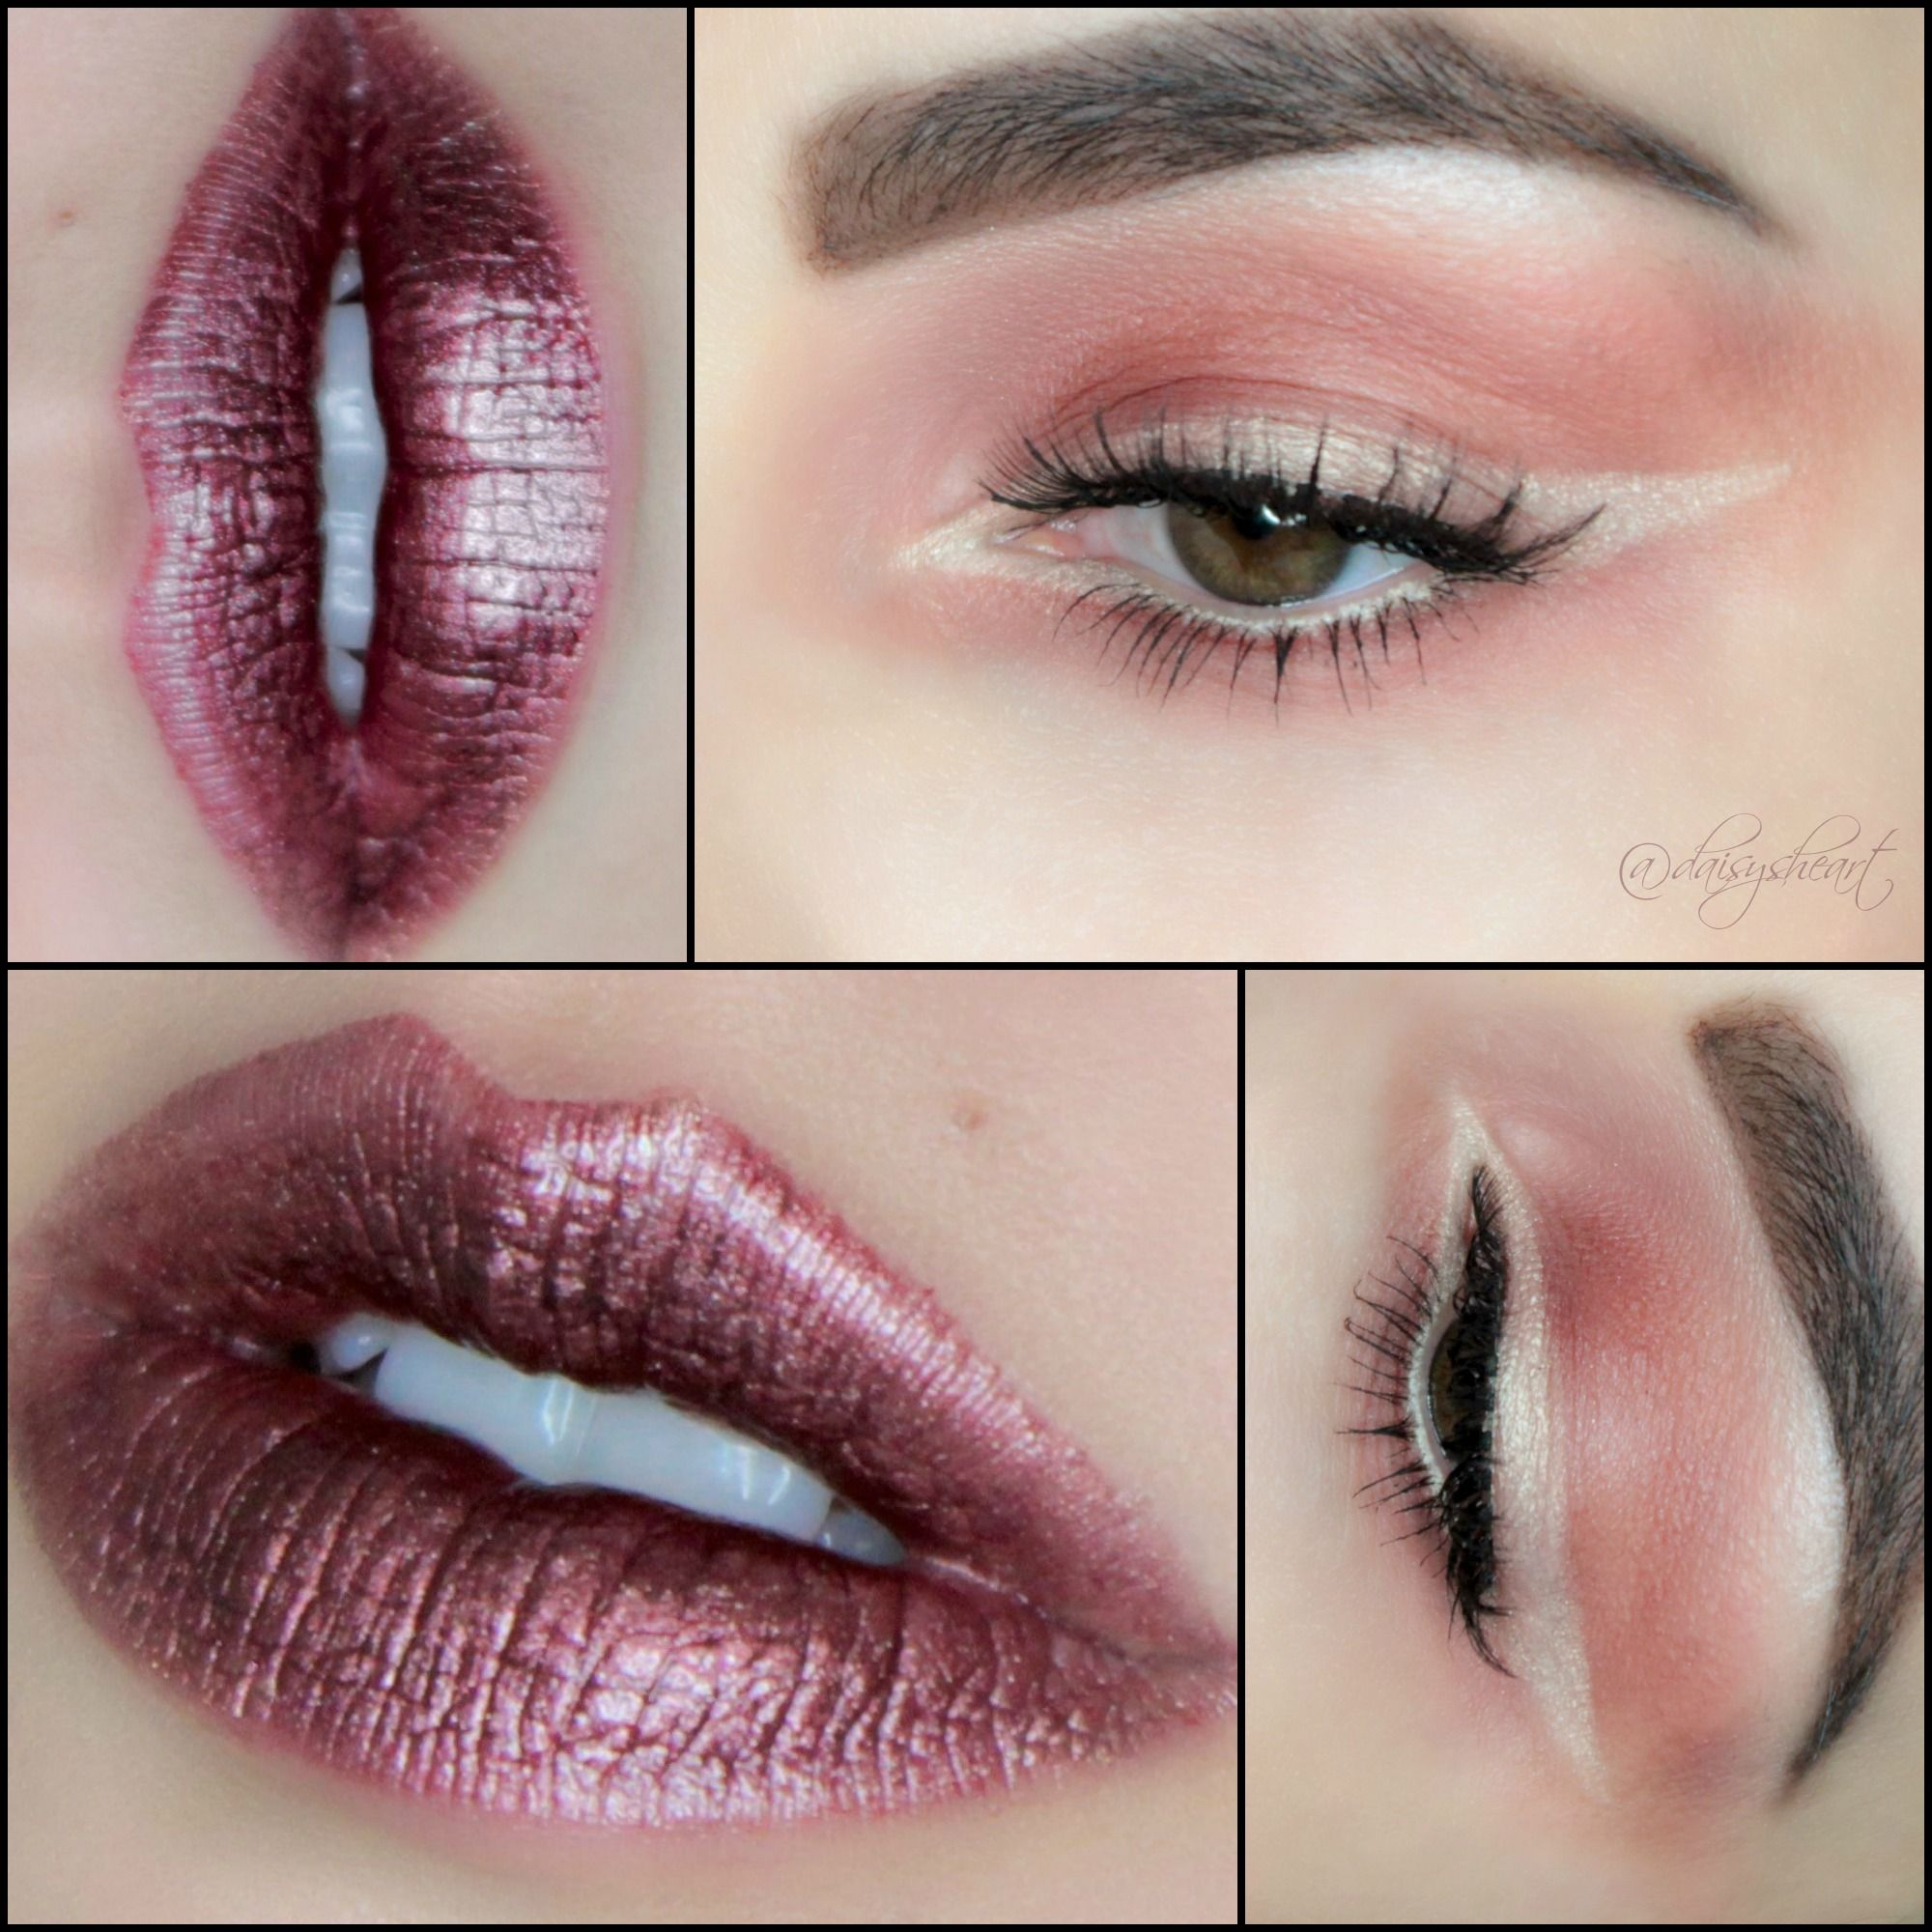 Estee Lauder Pearl Liner & House of Beauty lip hybrid in Iron Rose ...